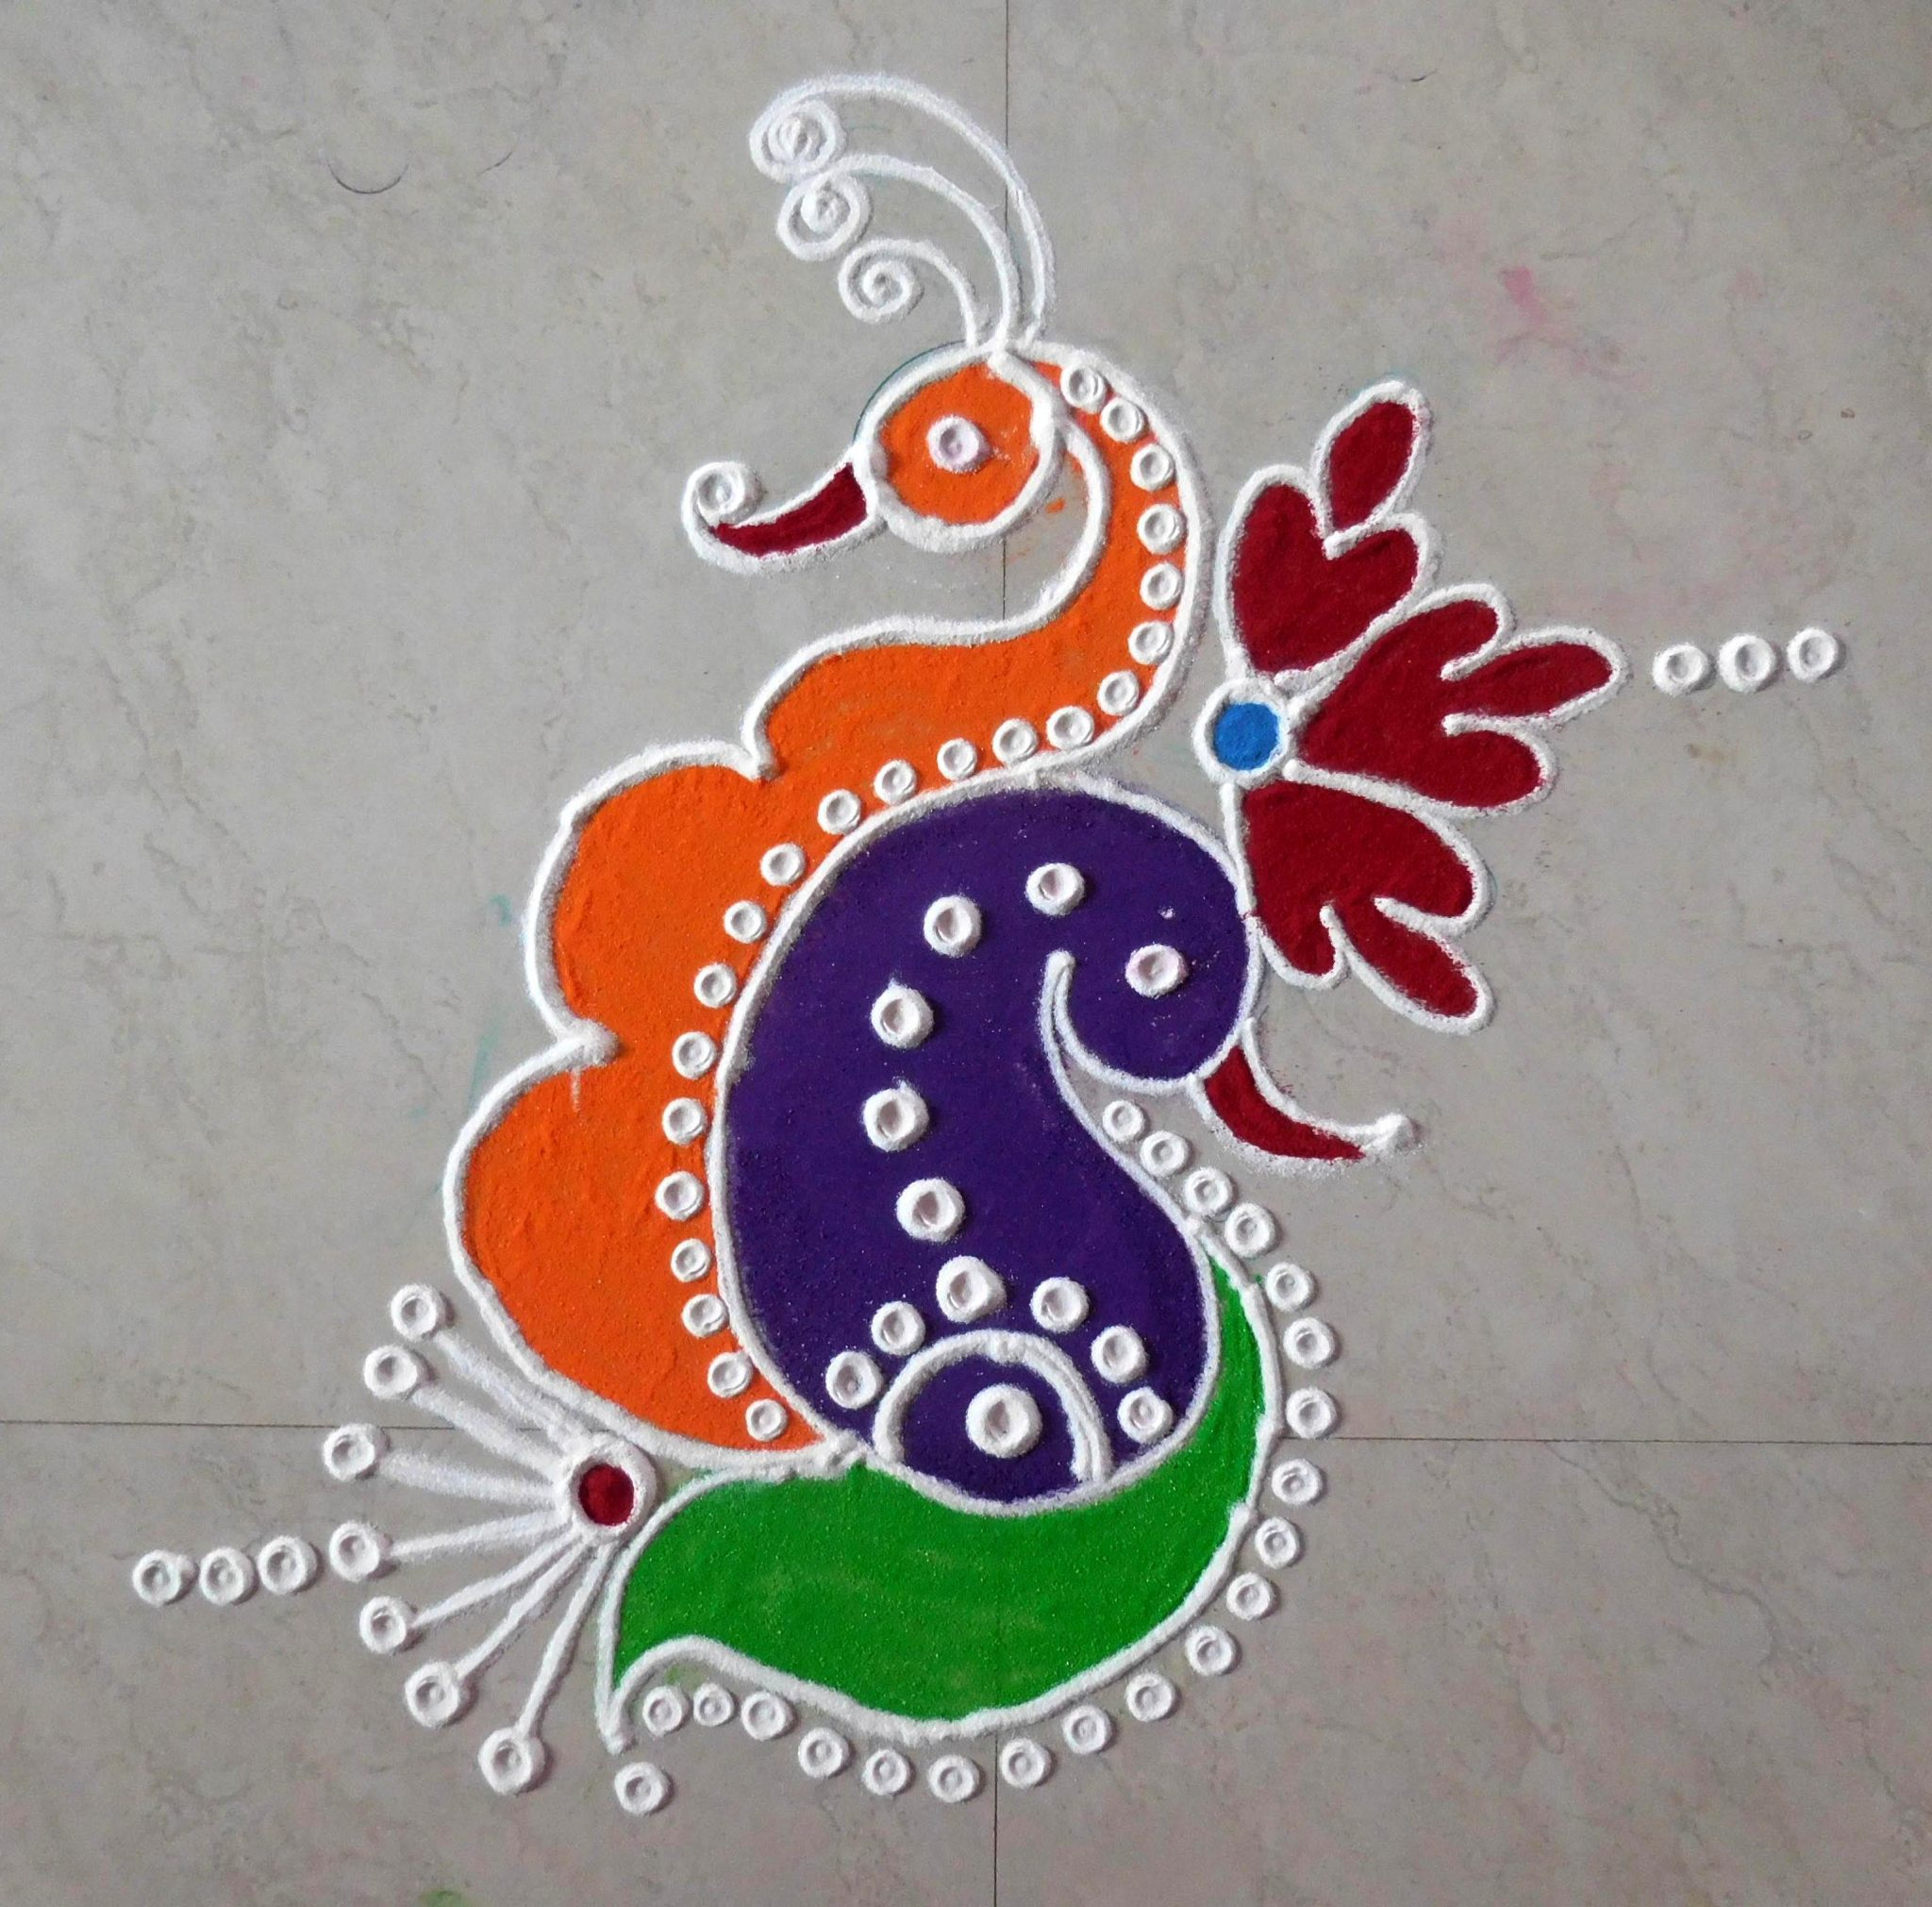 Peacock Images For Rangoli Easy to Make